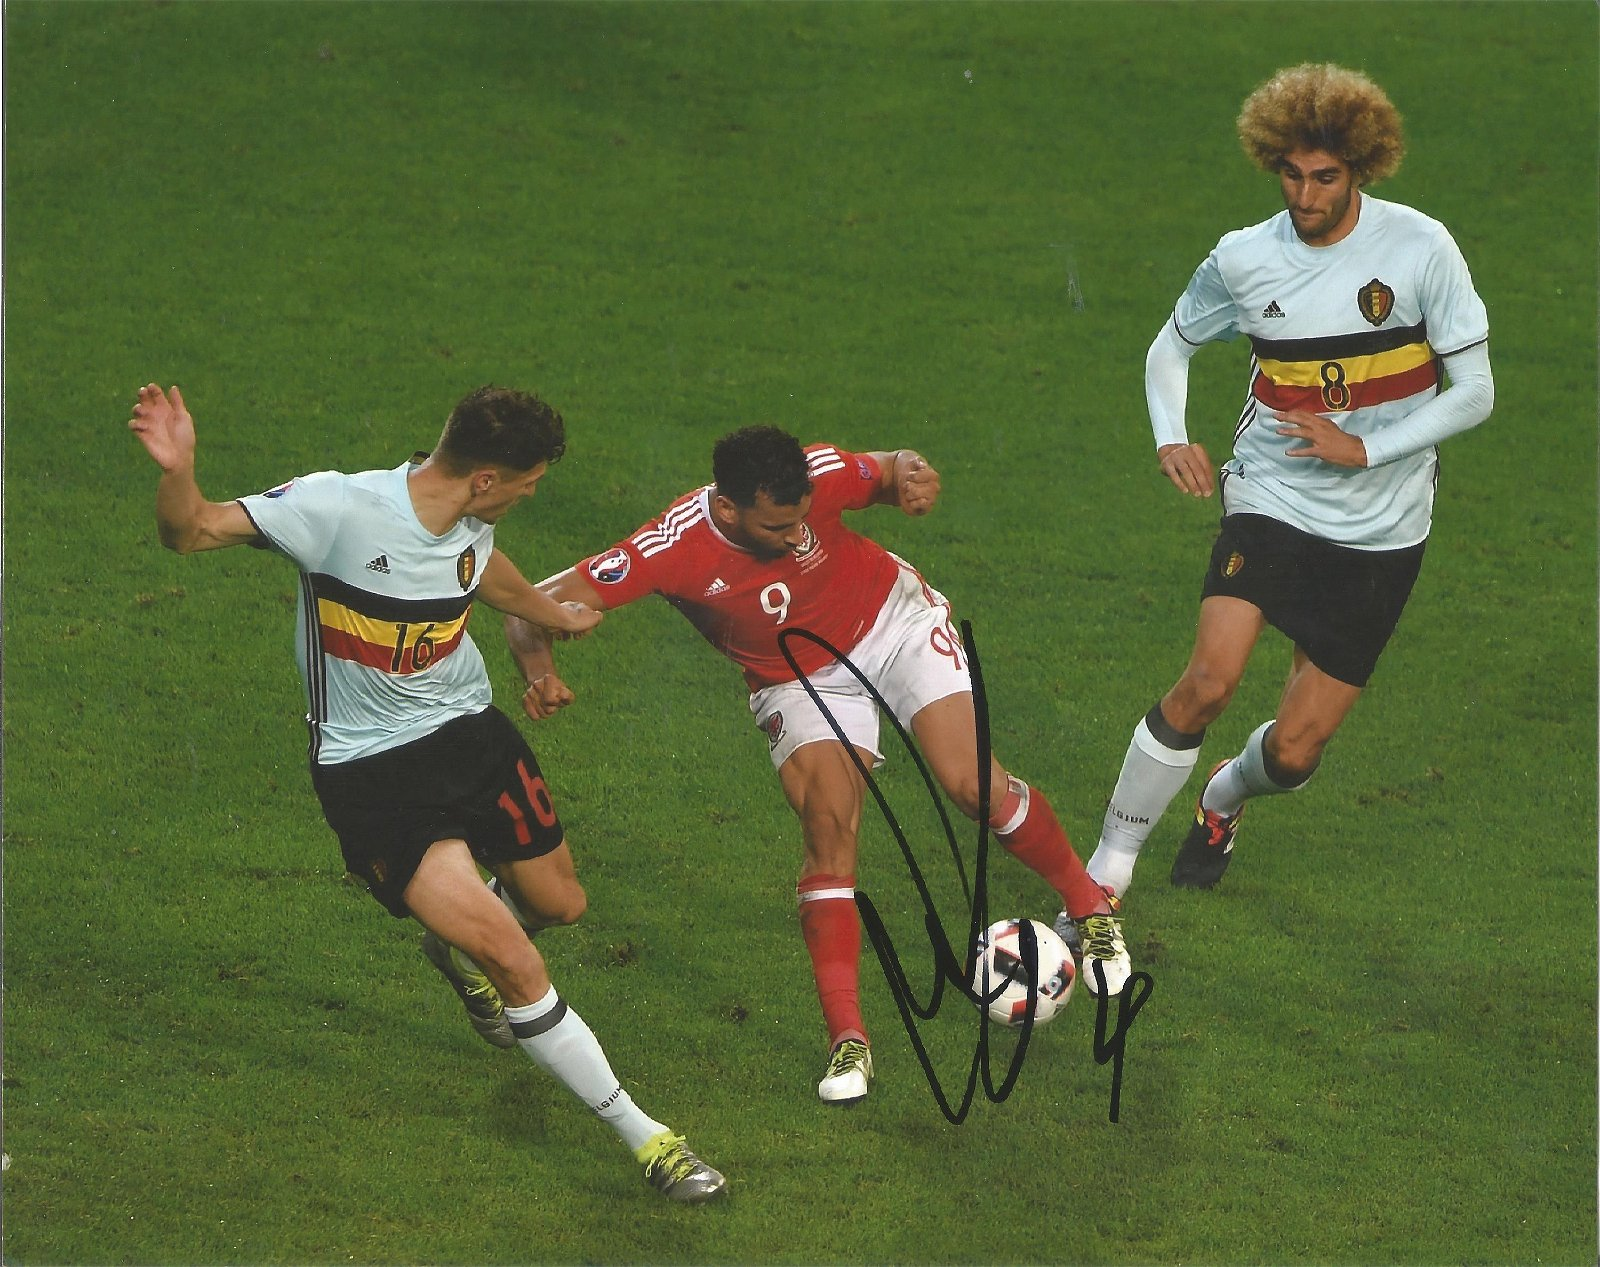 Hal Robson Kanu Signed Wales 8x10 Photo . Good